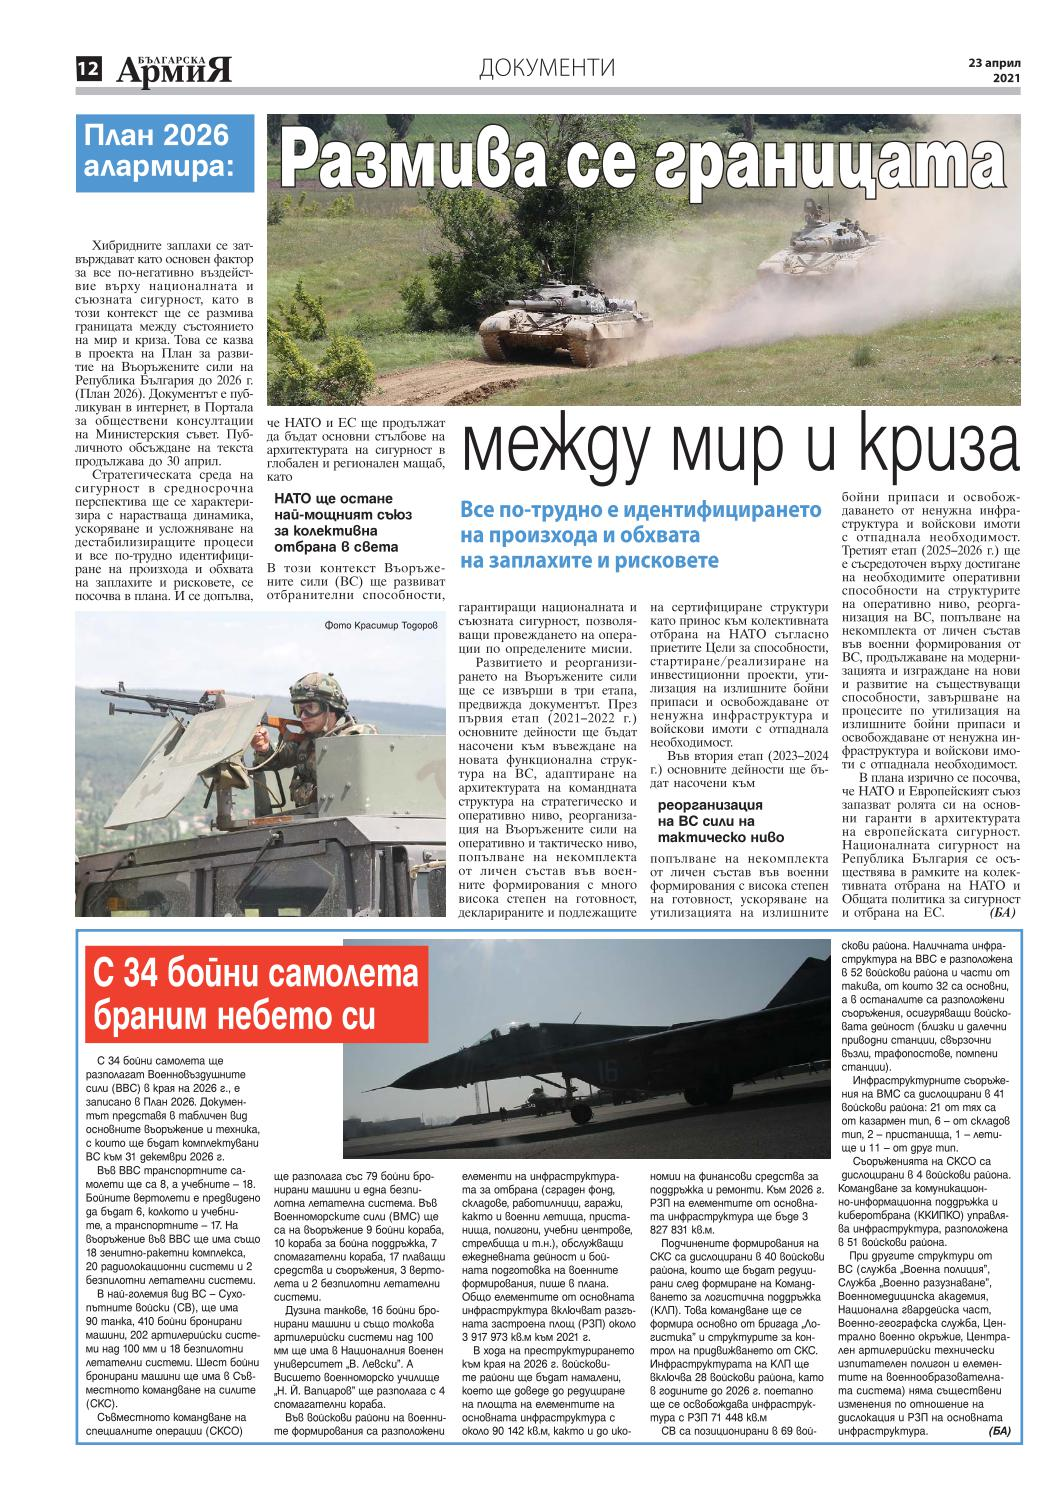 https://armymedia.bg/wp-content/uploads/2021/04/12.page1_-2.jpg